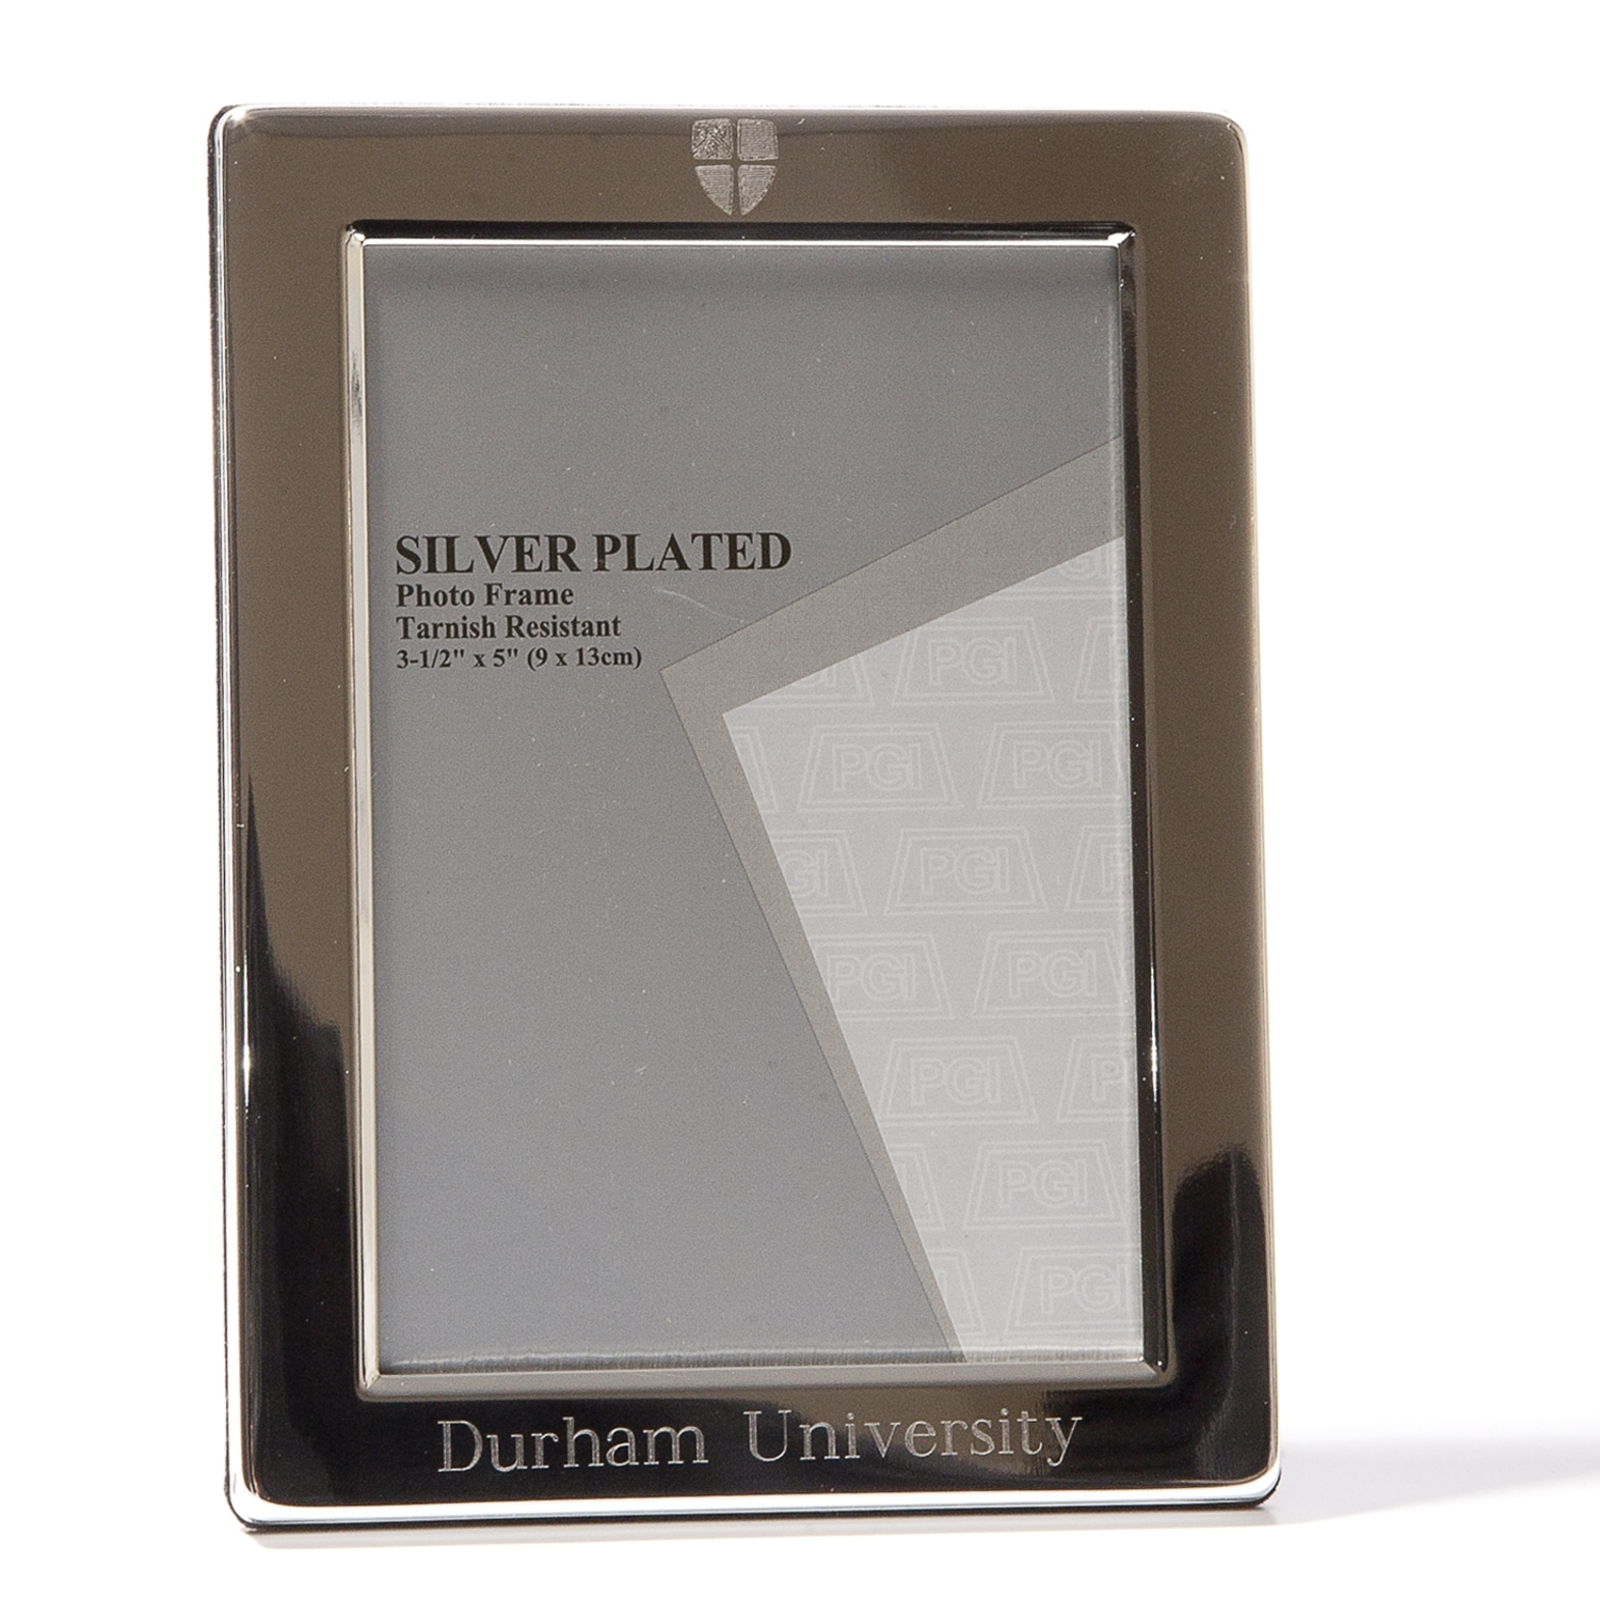 Silver Plated Photo Frame Small At Durham University